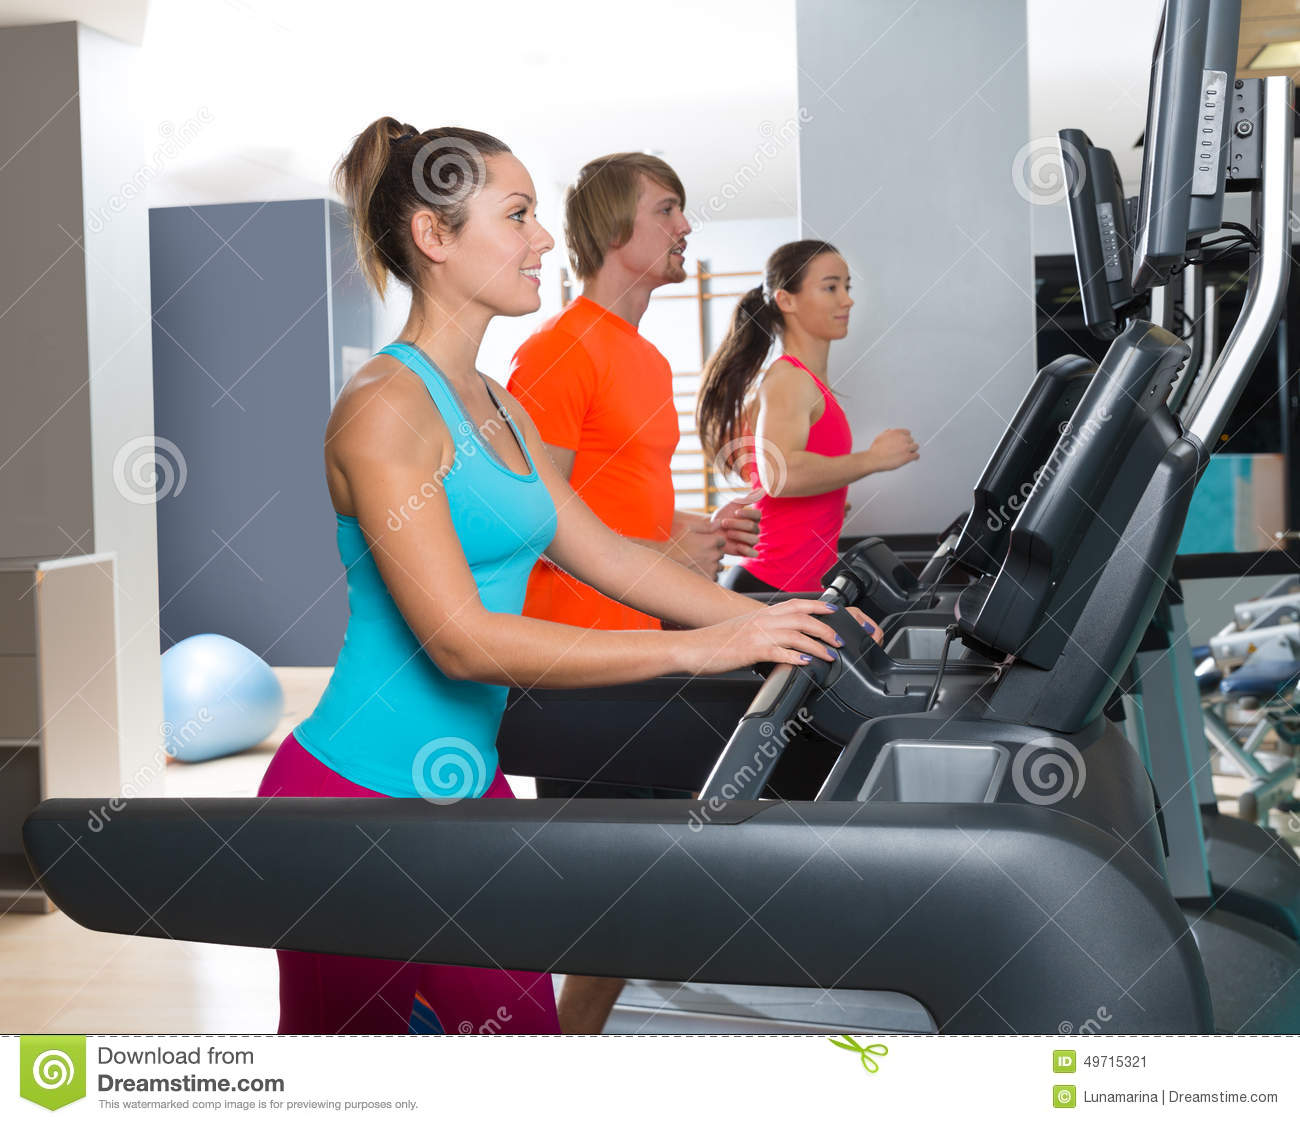 Amino Z Team Womens Weight Lifting Bodybuilding Gym: Gym Treadmill Group Running Indoor Stock Photo